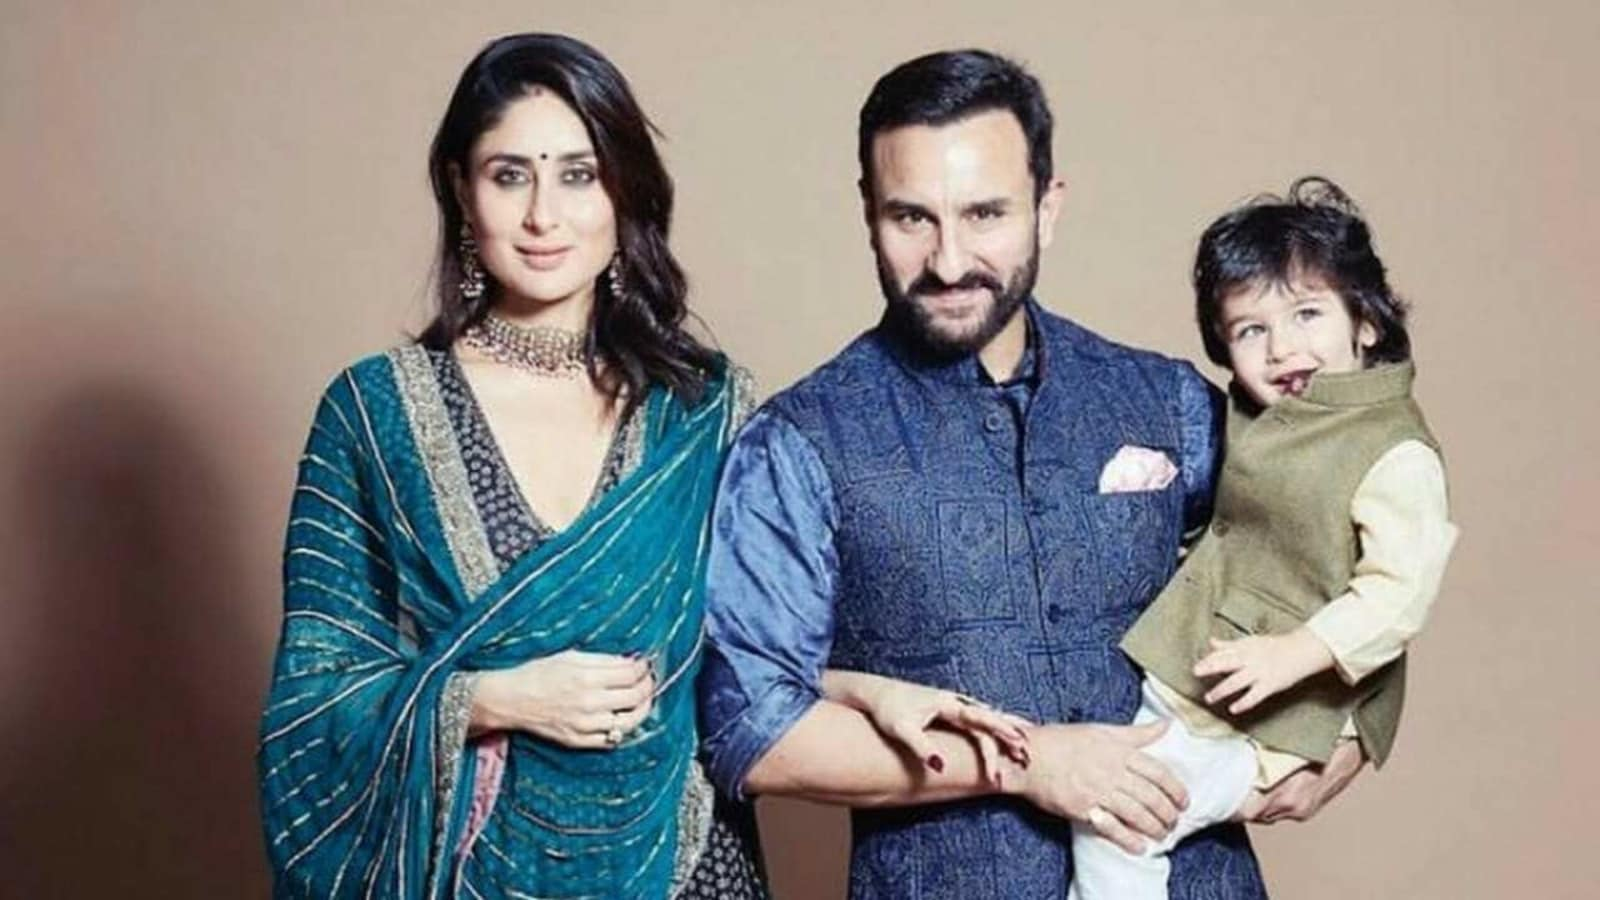 Saif Ali Khan shares update after Kareena Kapoor gives birth to second child: 'Mom and baby are safe and healthy' - Hindustan Times